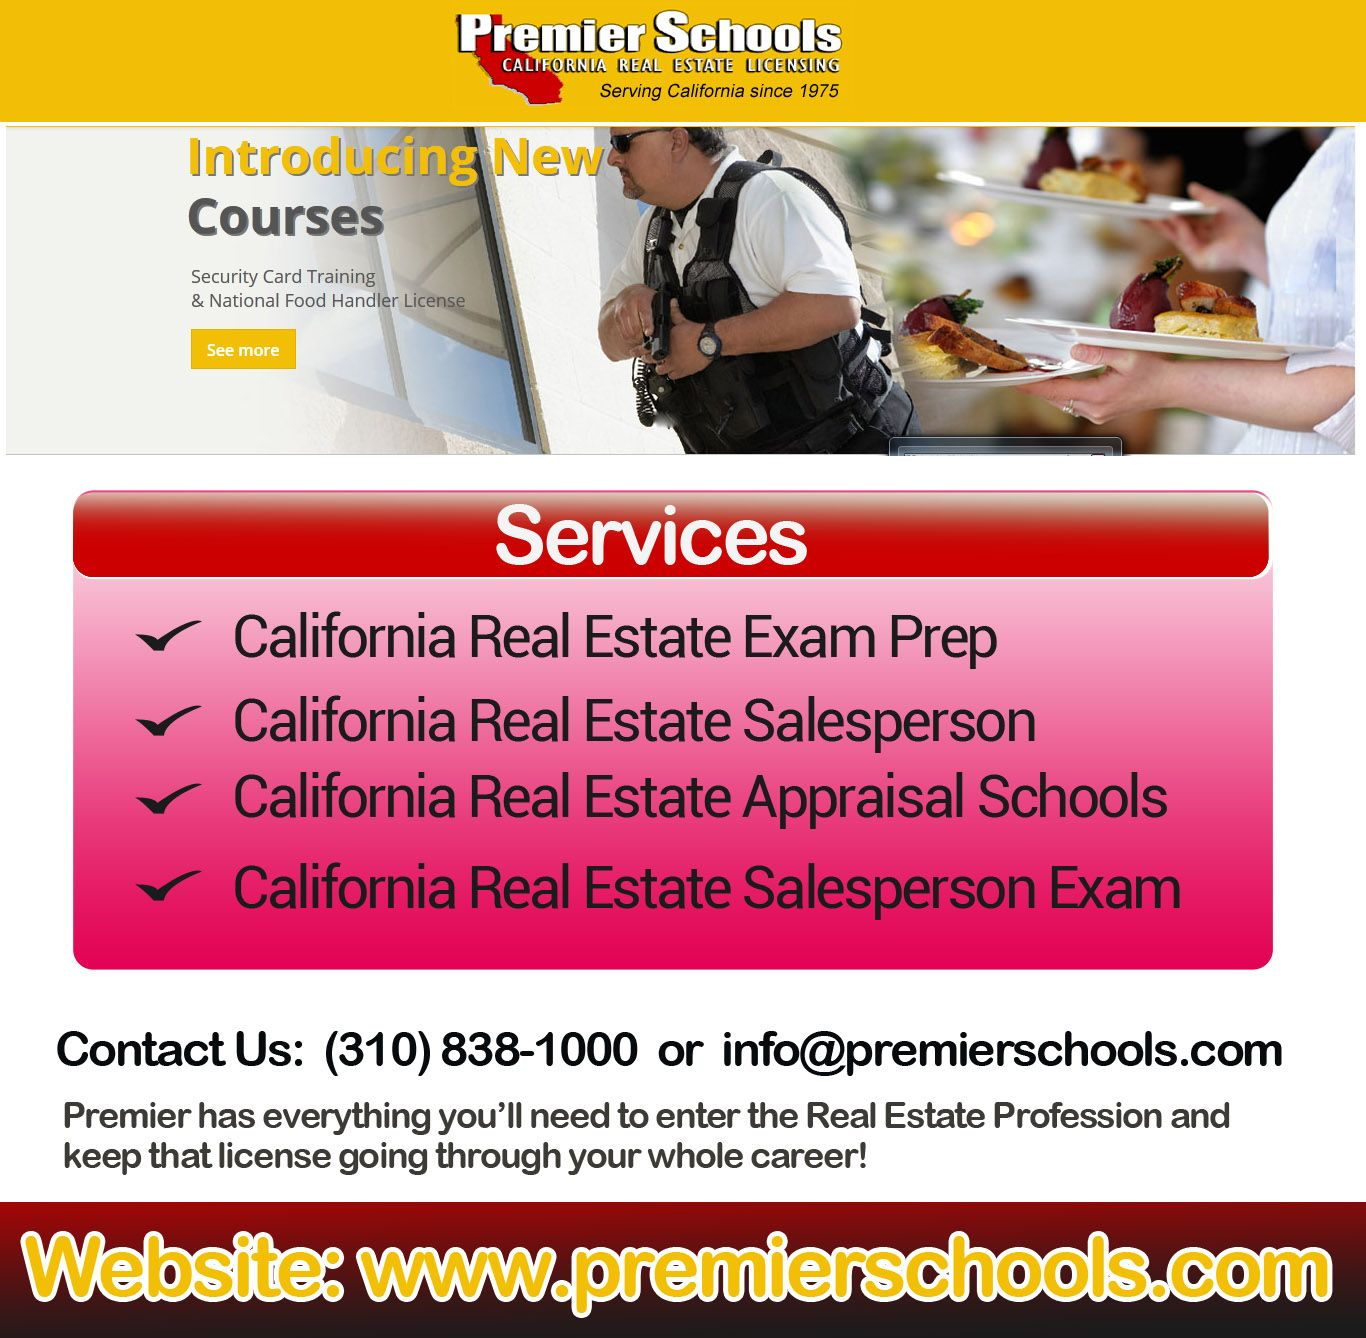 Reference Book - A Real Estate Guide - DRE